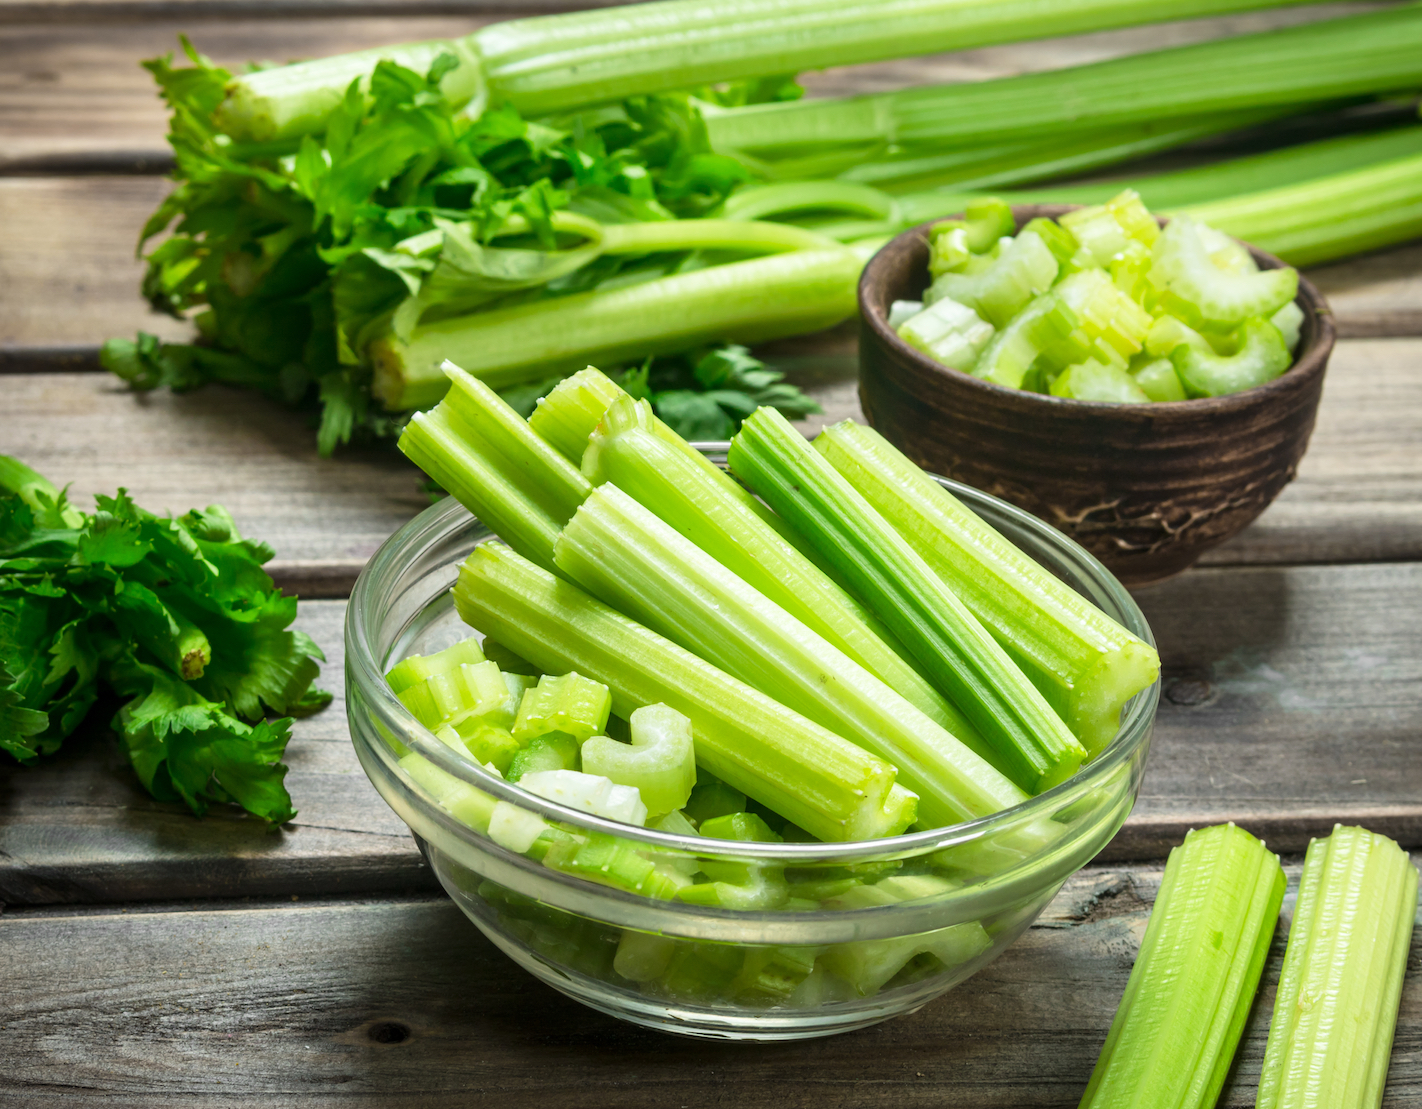 A celery stalk a day may help keep heart disease and cancer away ...